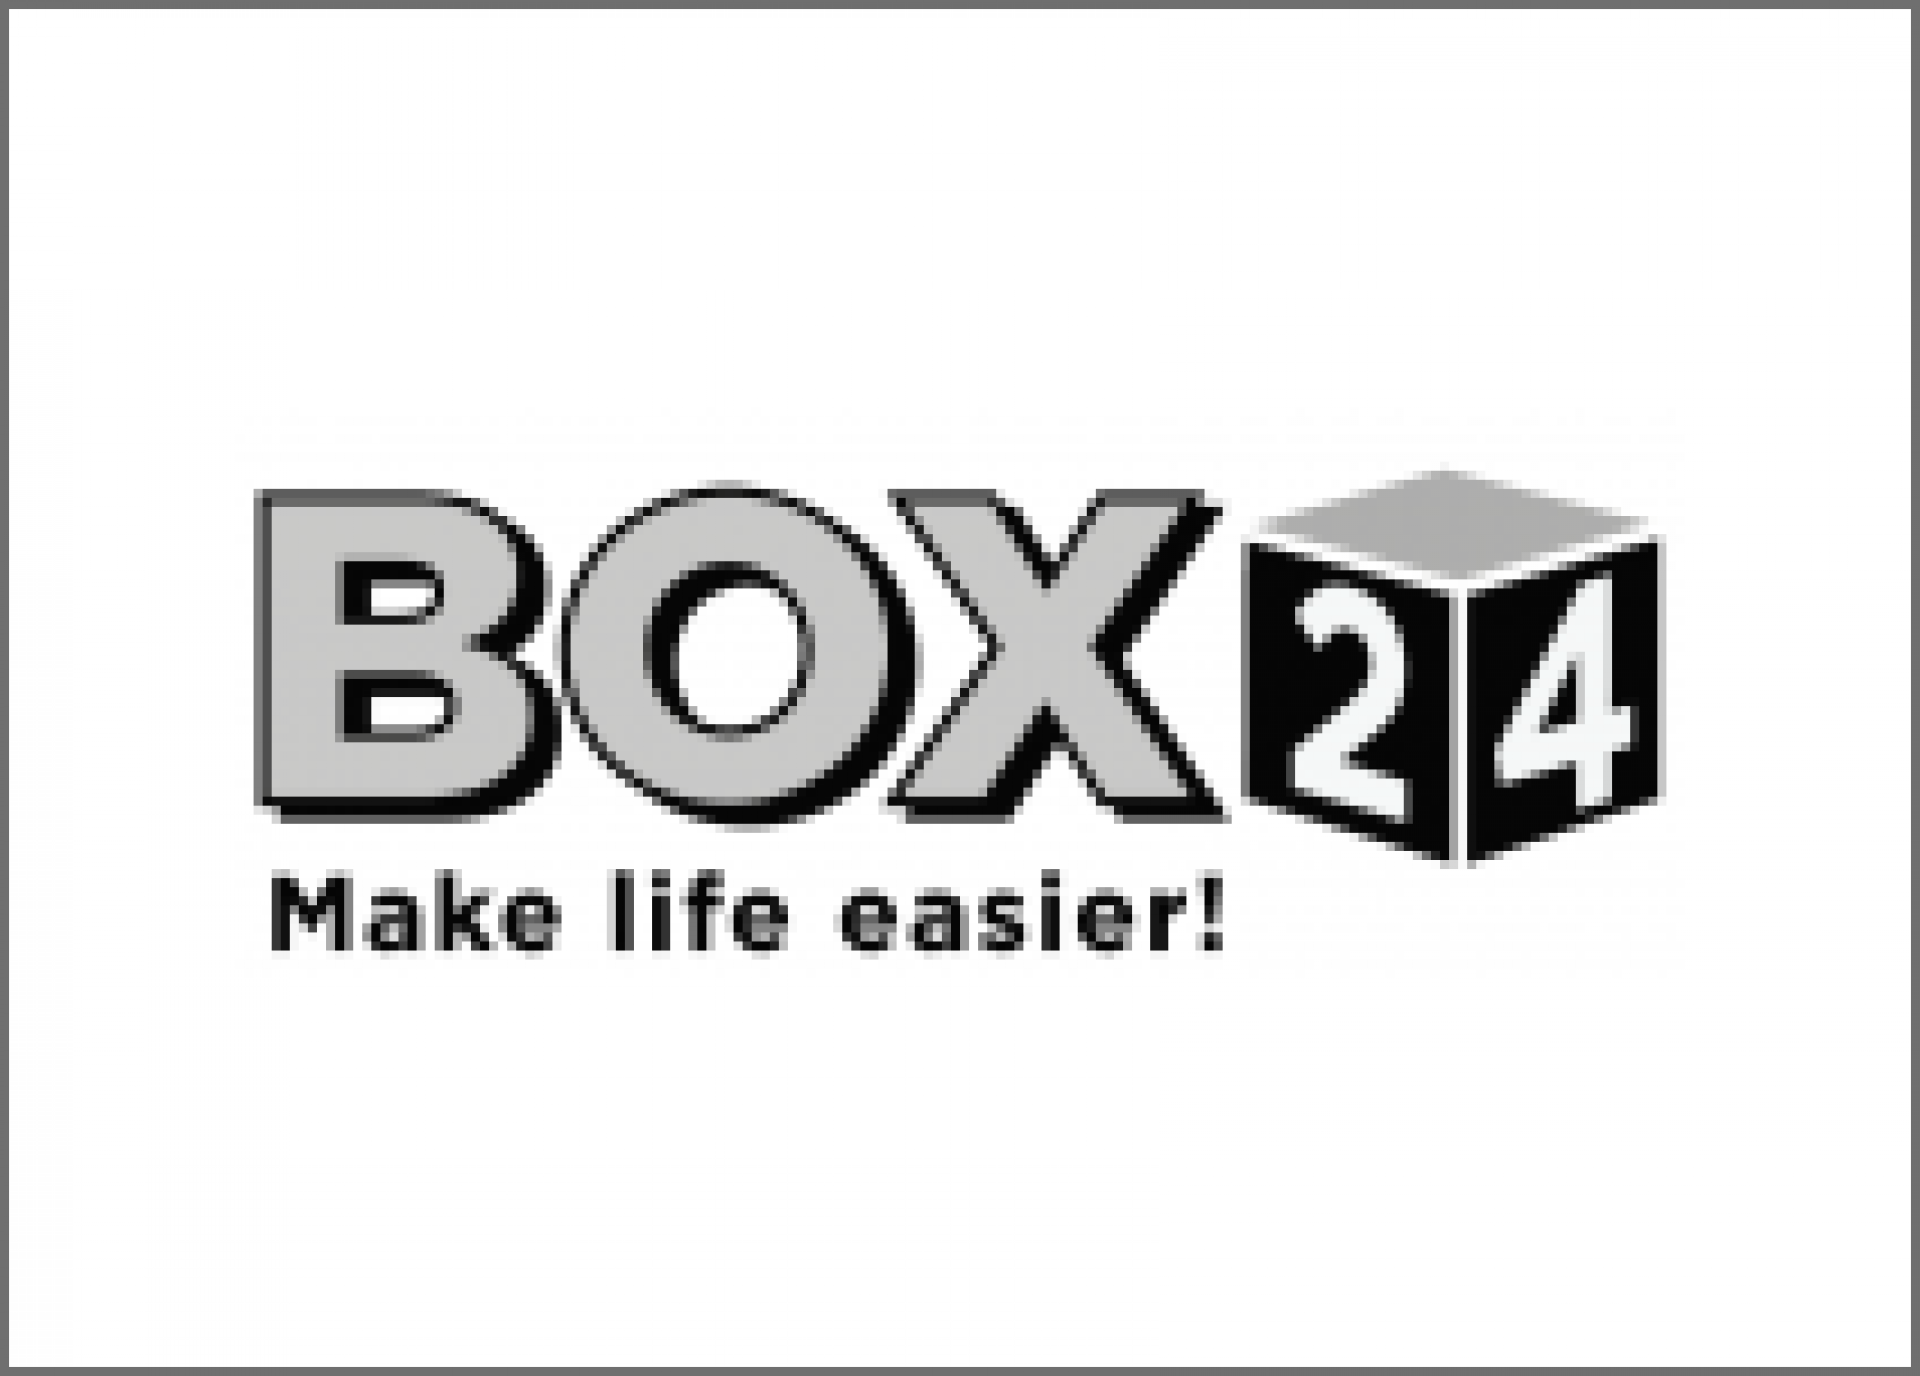 Box24 Co., Ltd.